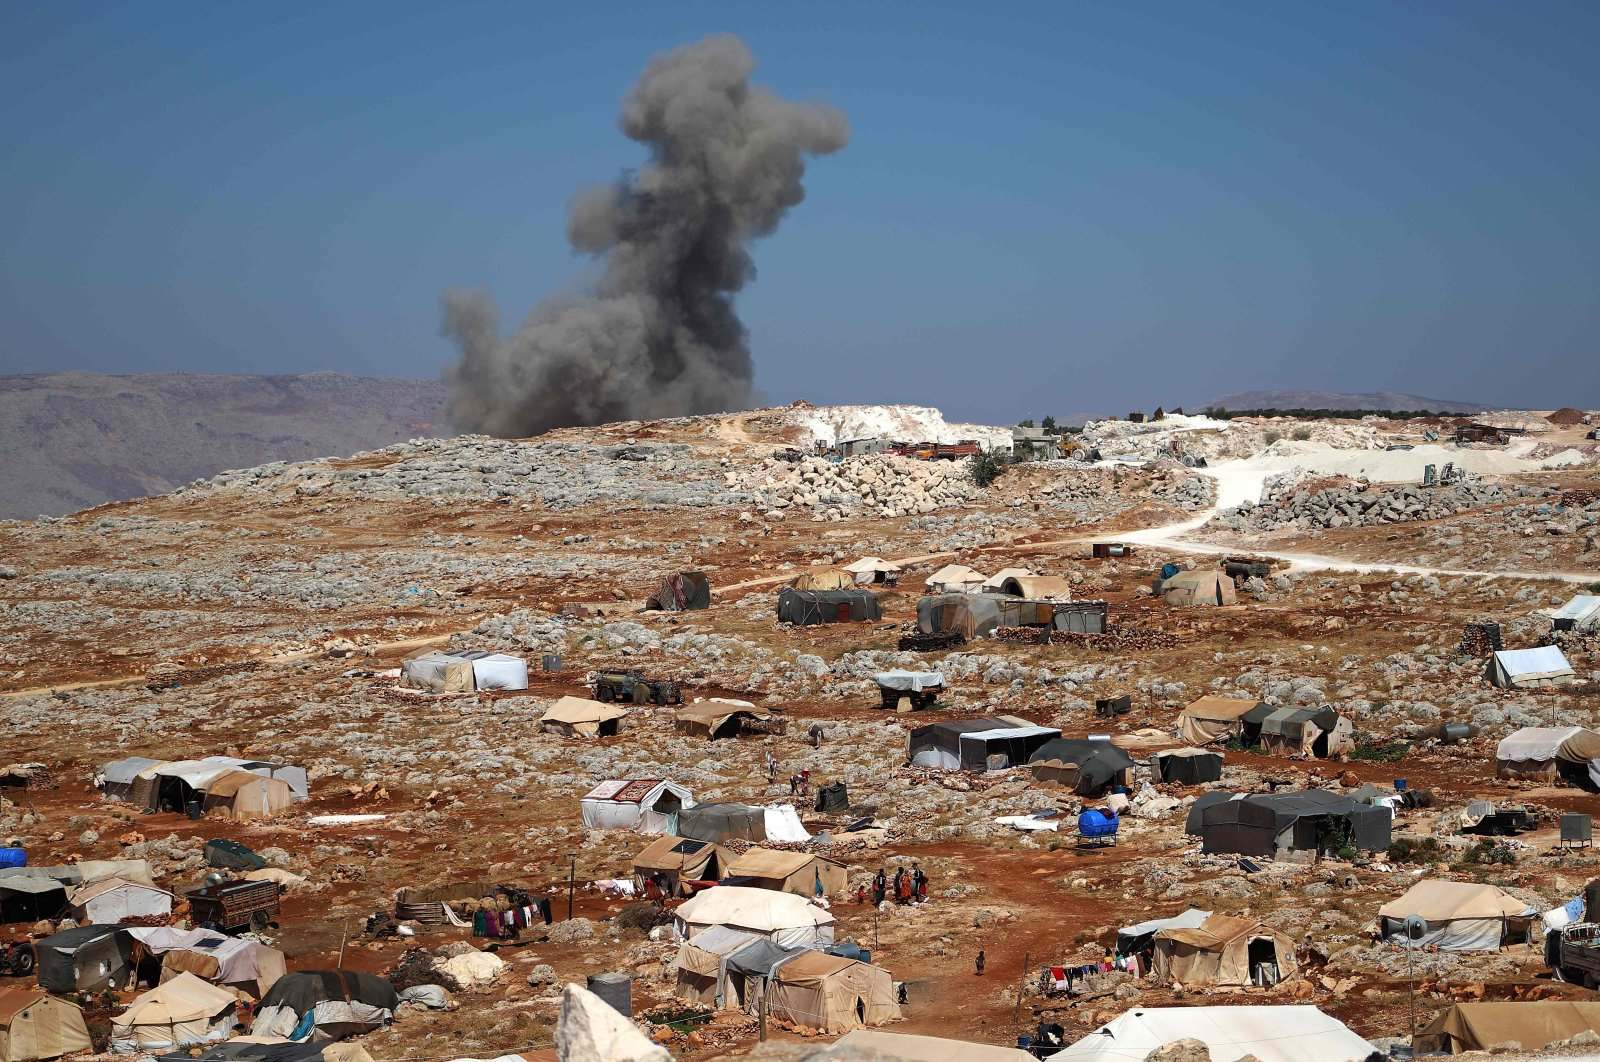 A plume of smoke rises behind a hill, where internally displaced Syrians have set up tents, during reported airstrikes by pro-regime forces, north of the opposition-held city of Idlib, Syria, Aug. 20, 2021. (AFP Photo)